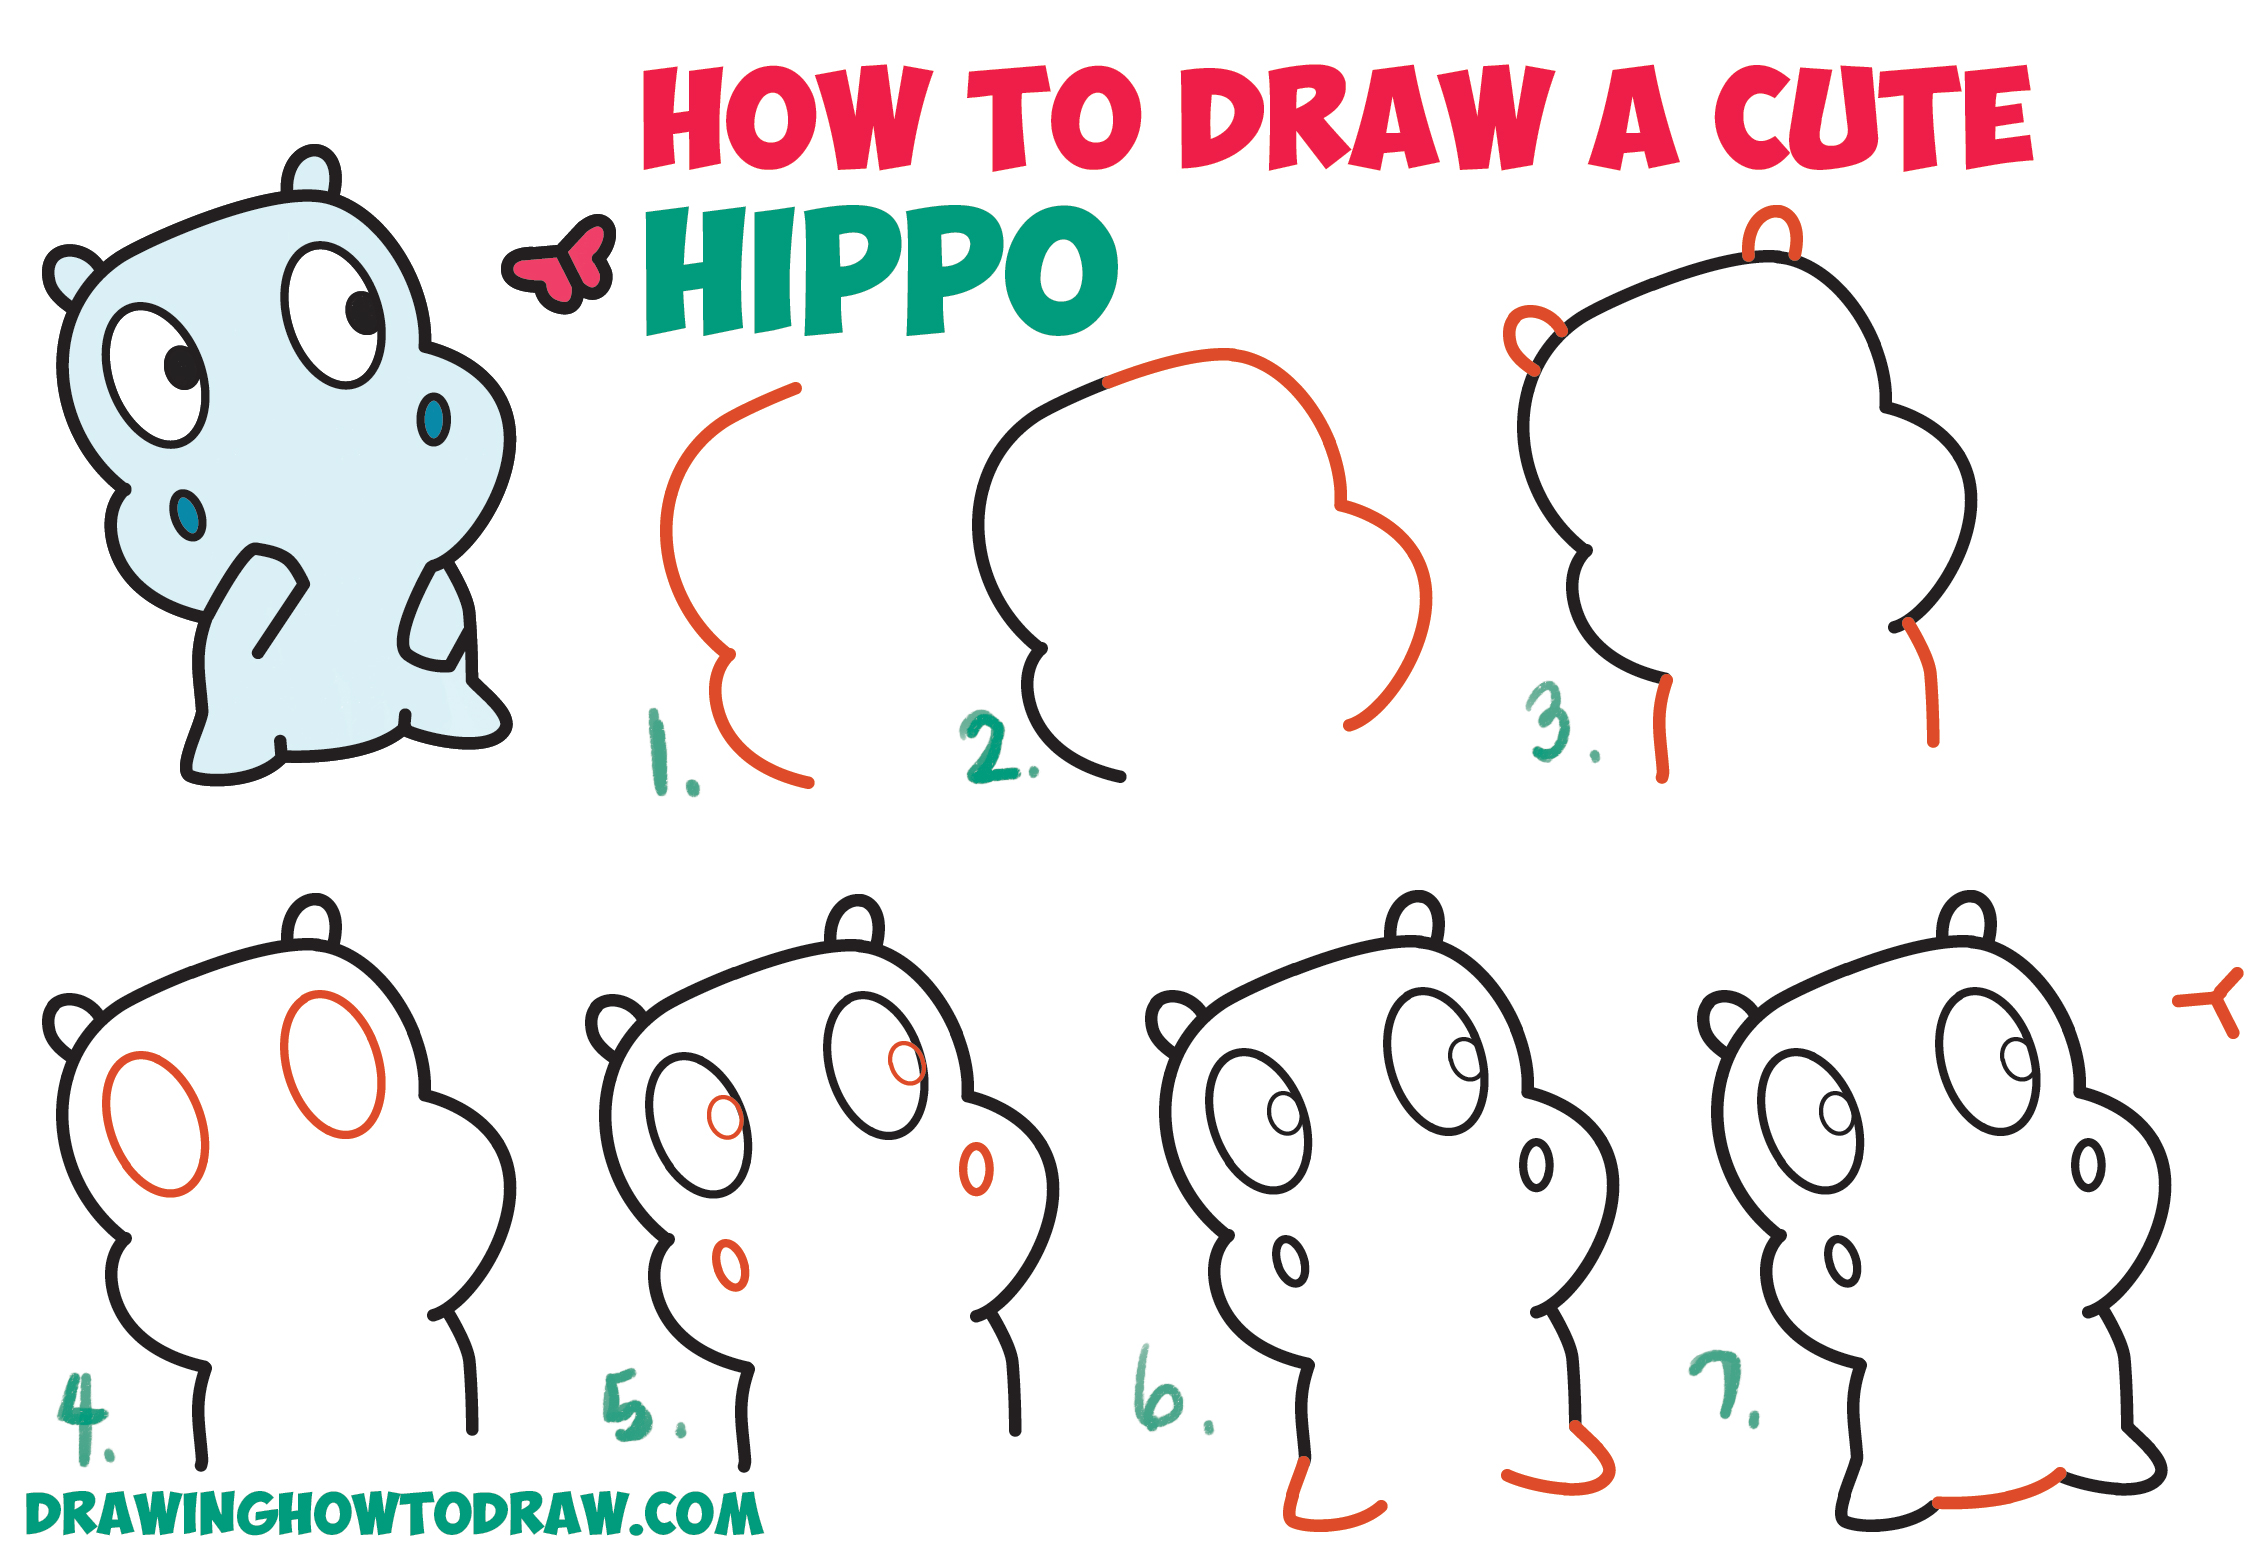 How to Draw a Cute Cartoon Baby Hippo and Butterfly Easy Step by Step Drawing Tutorial for Kids & Beginners (Kawaii / Chibi style)